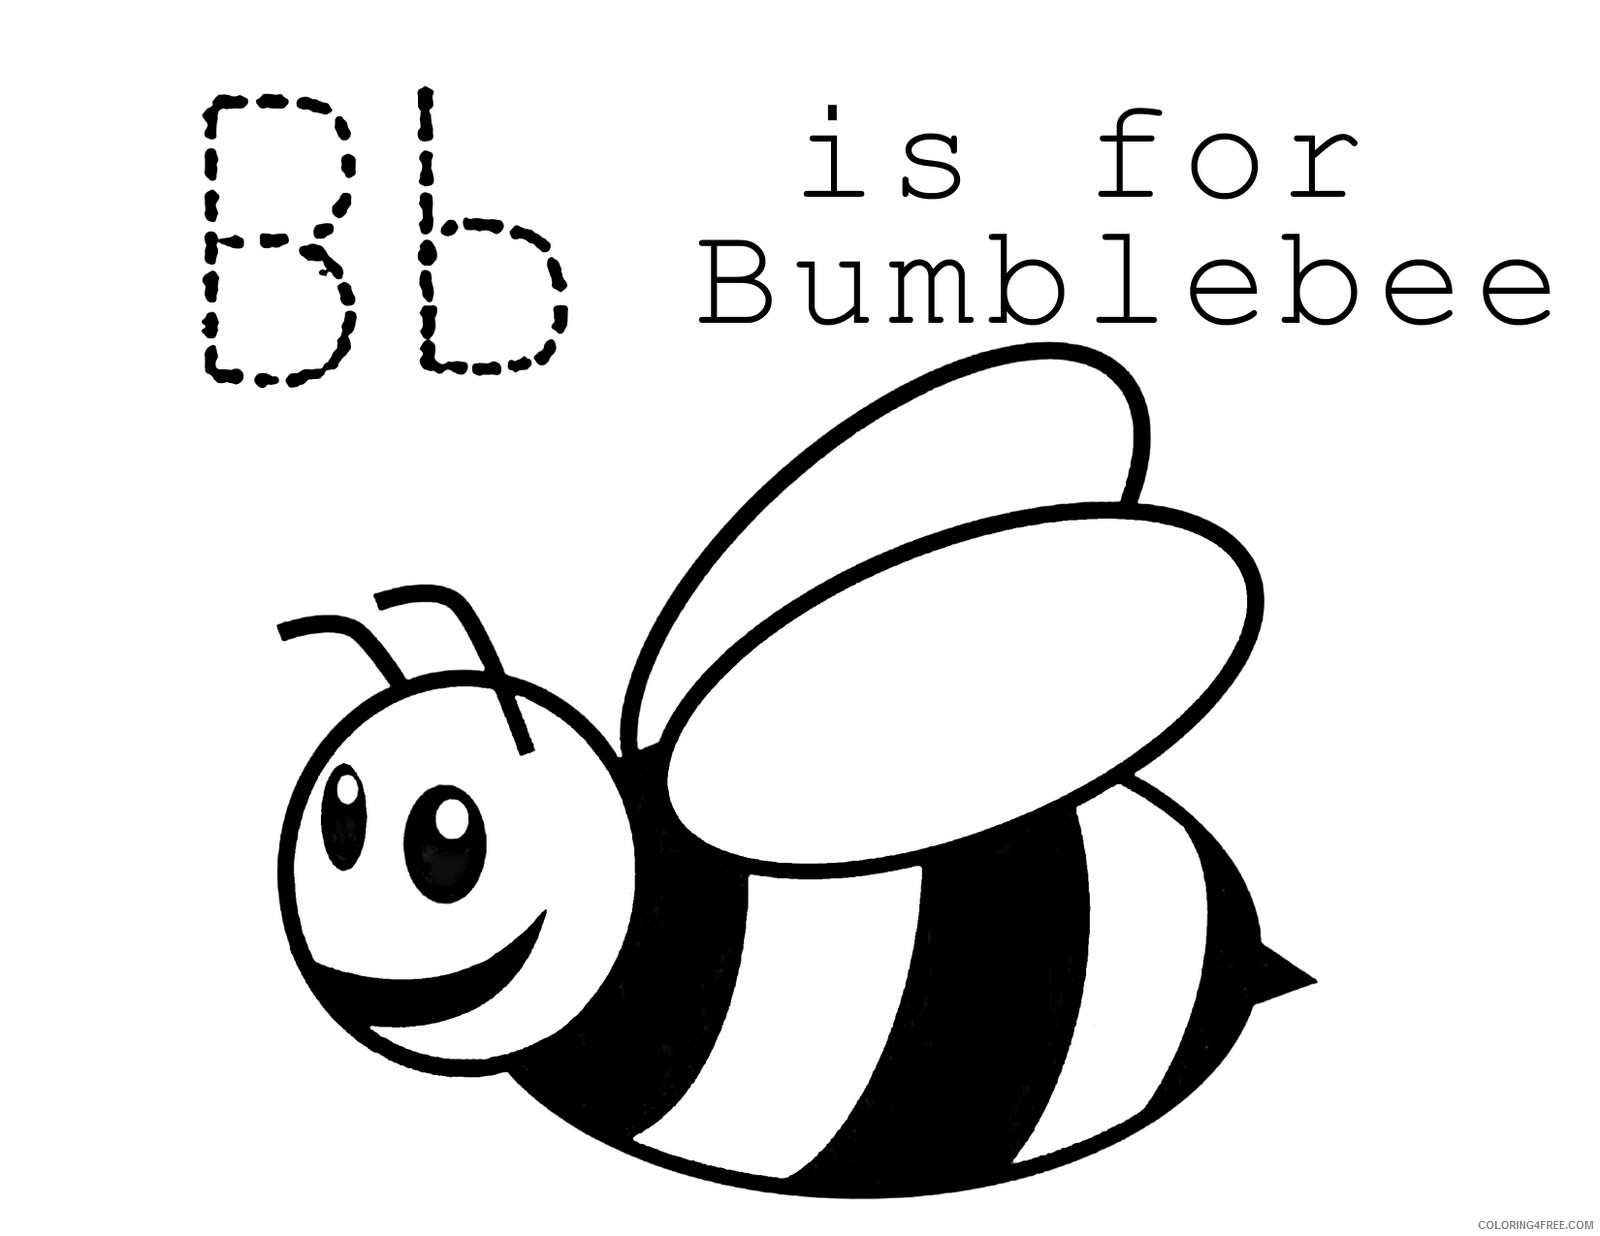 bee coloring pages b for bumble bee Coloring4free